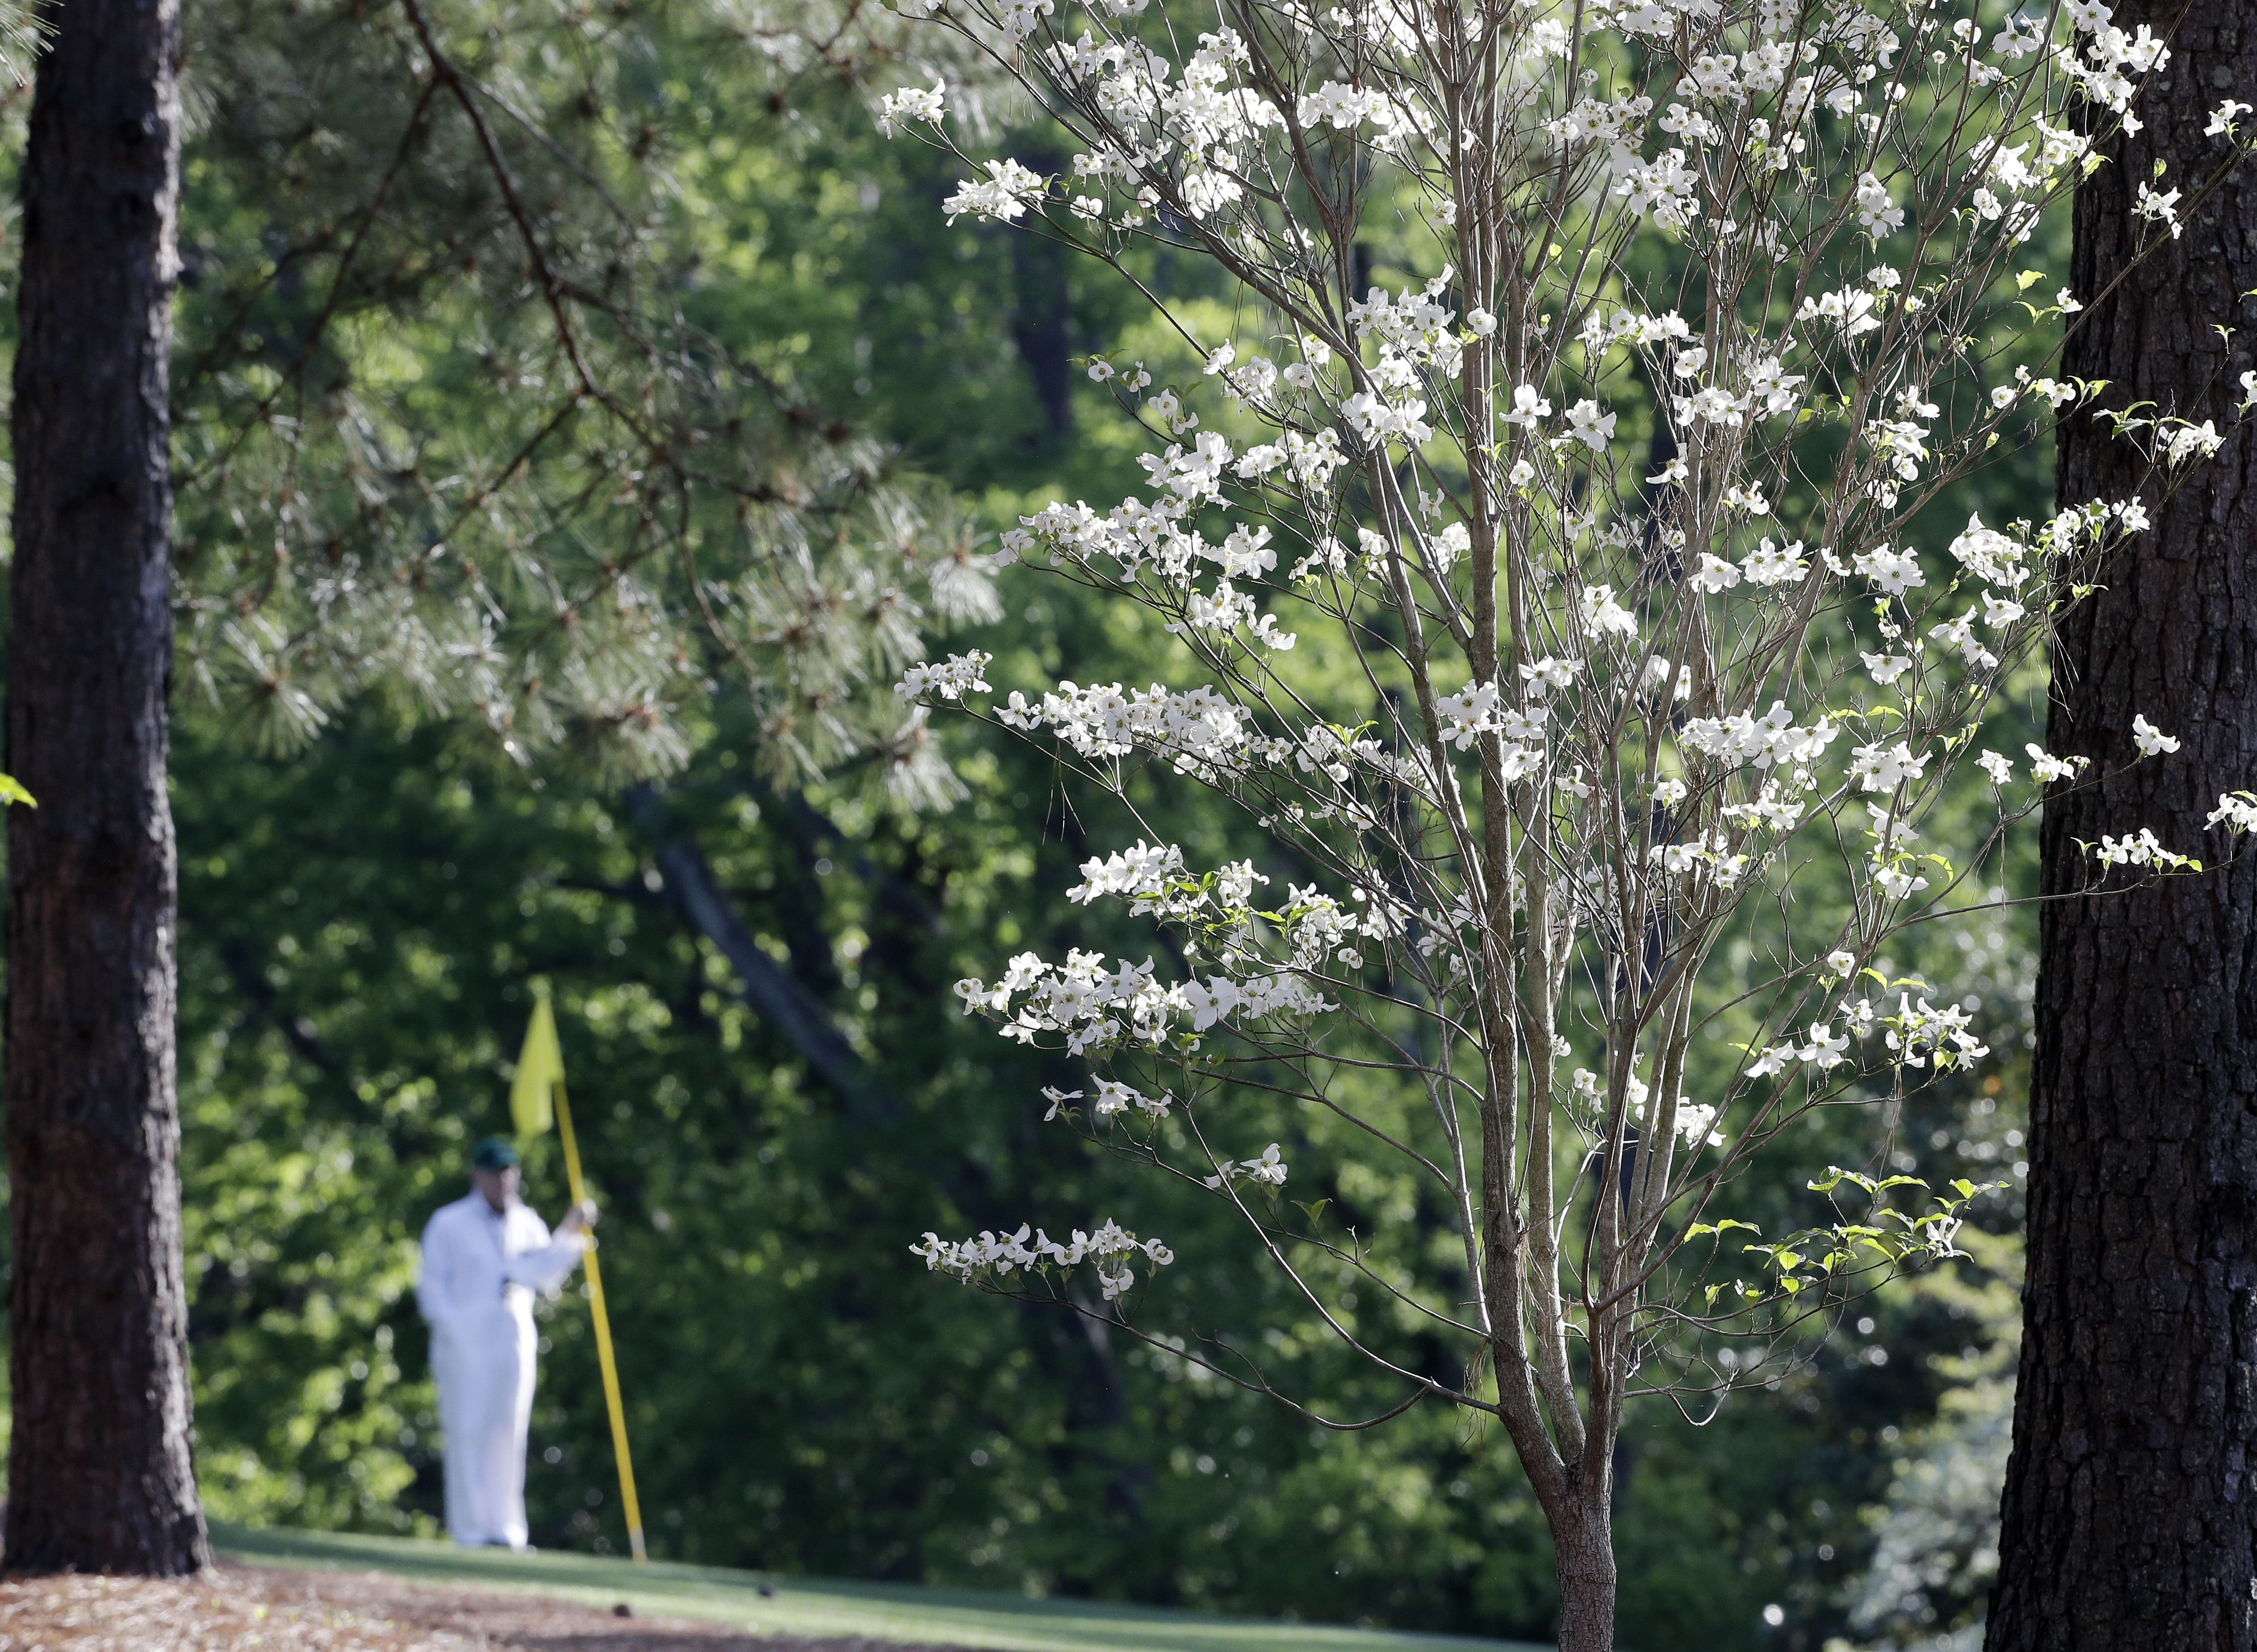 A caddie holds a green pin on the 11th hole during a practice round for the Masters golf tournament Wednesday, April 6, 2016, in Augusta, Ga. (AP Photo/Jae C. Hong)